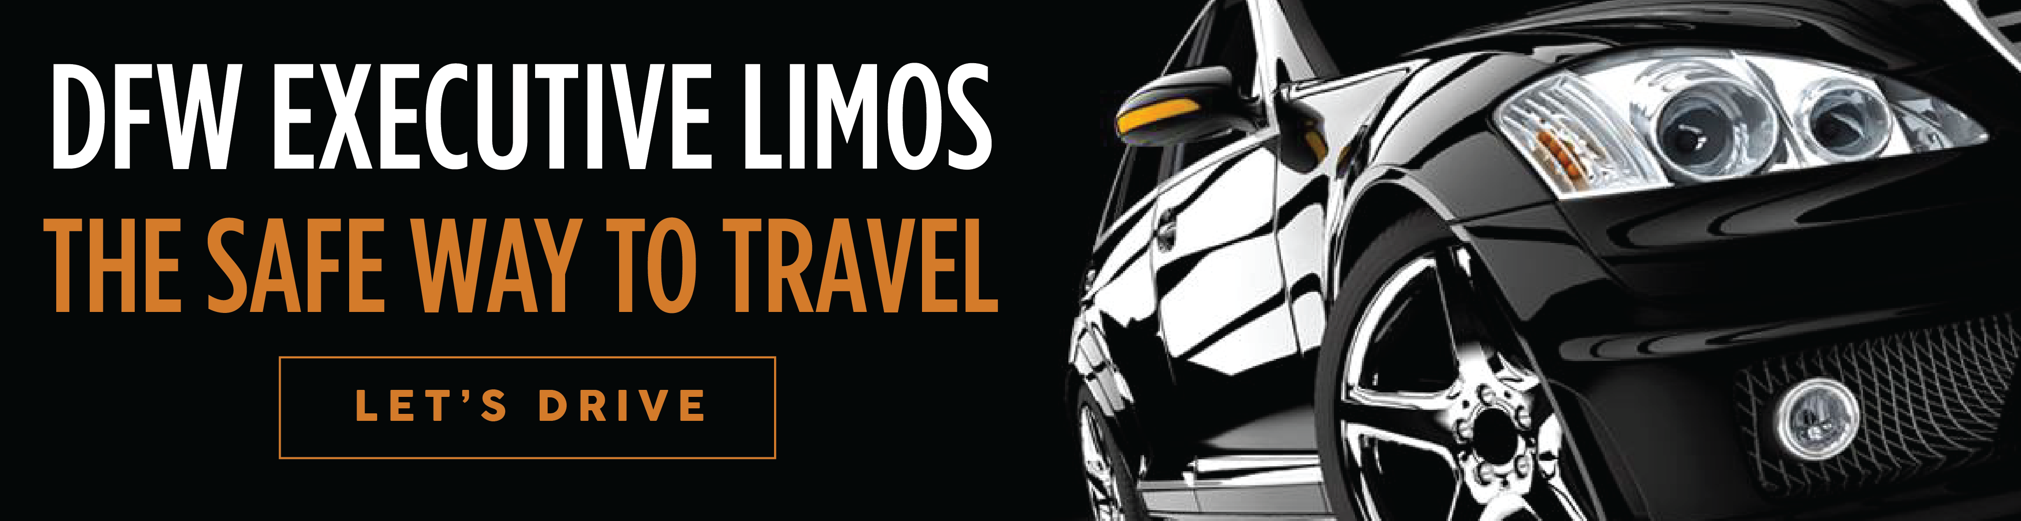 Dallas Limos Safe Way To Travel